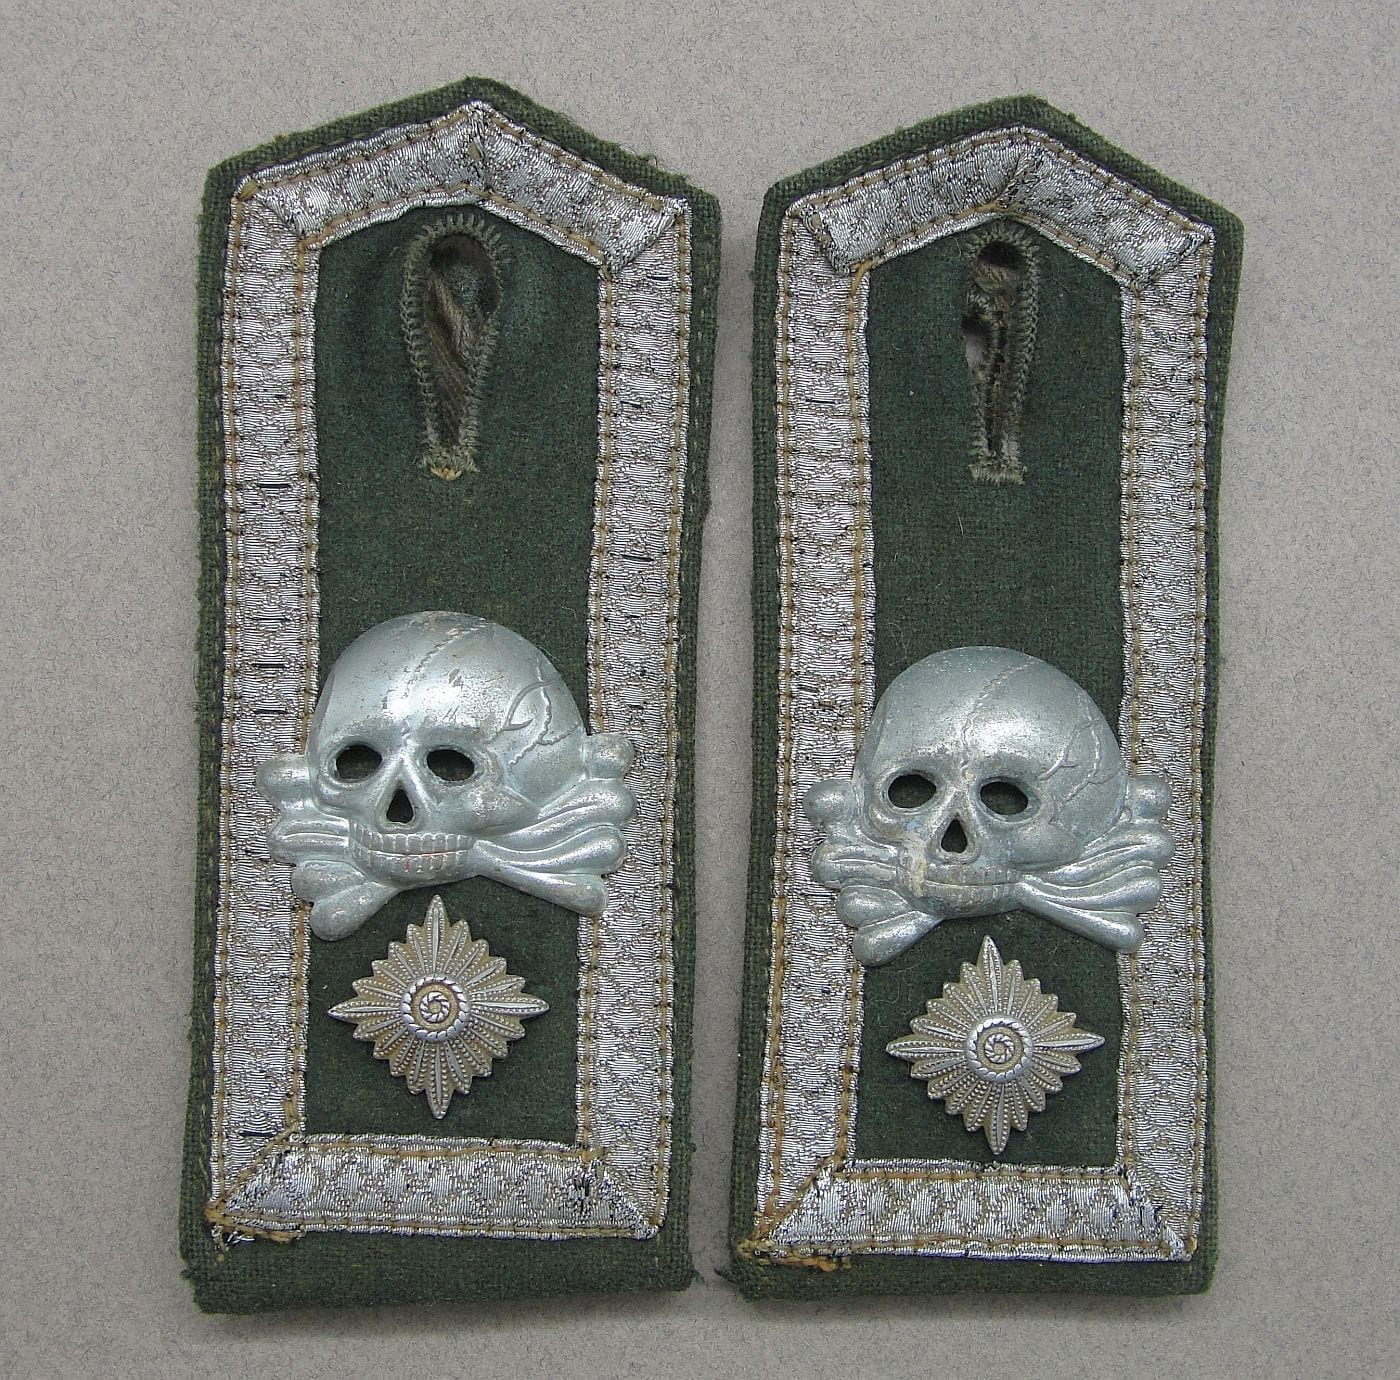 5th Cavalry Regiment Shoulder Boards with Over-sized Army/SS Cap Pattern Skulls